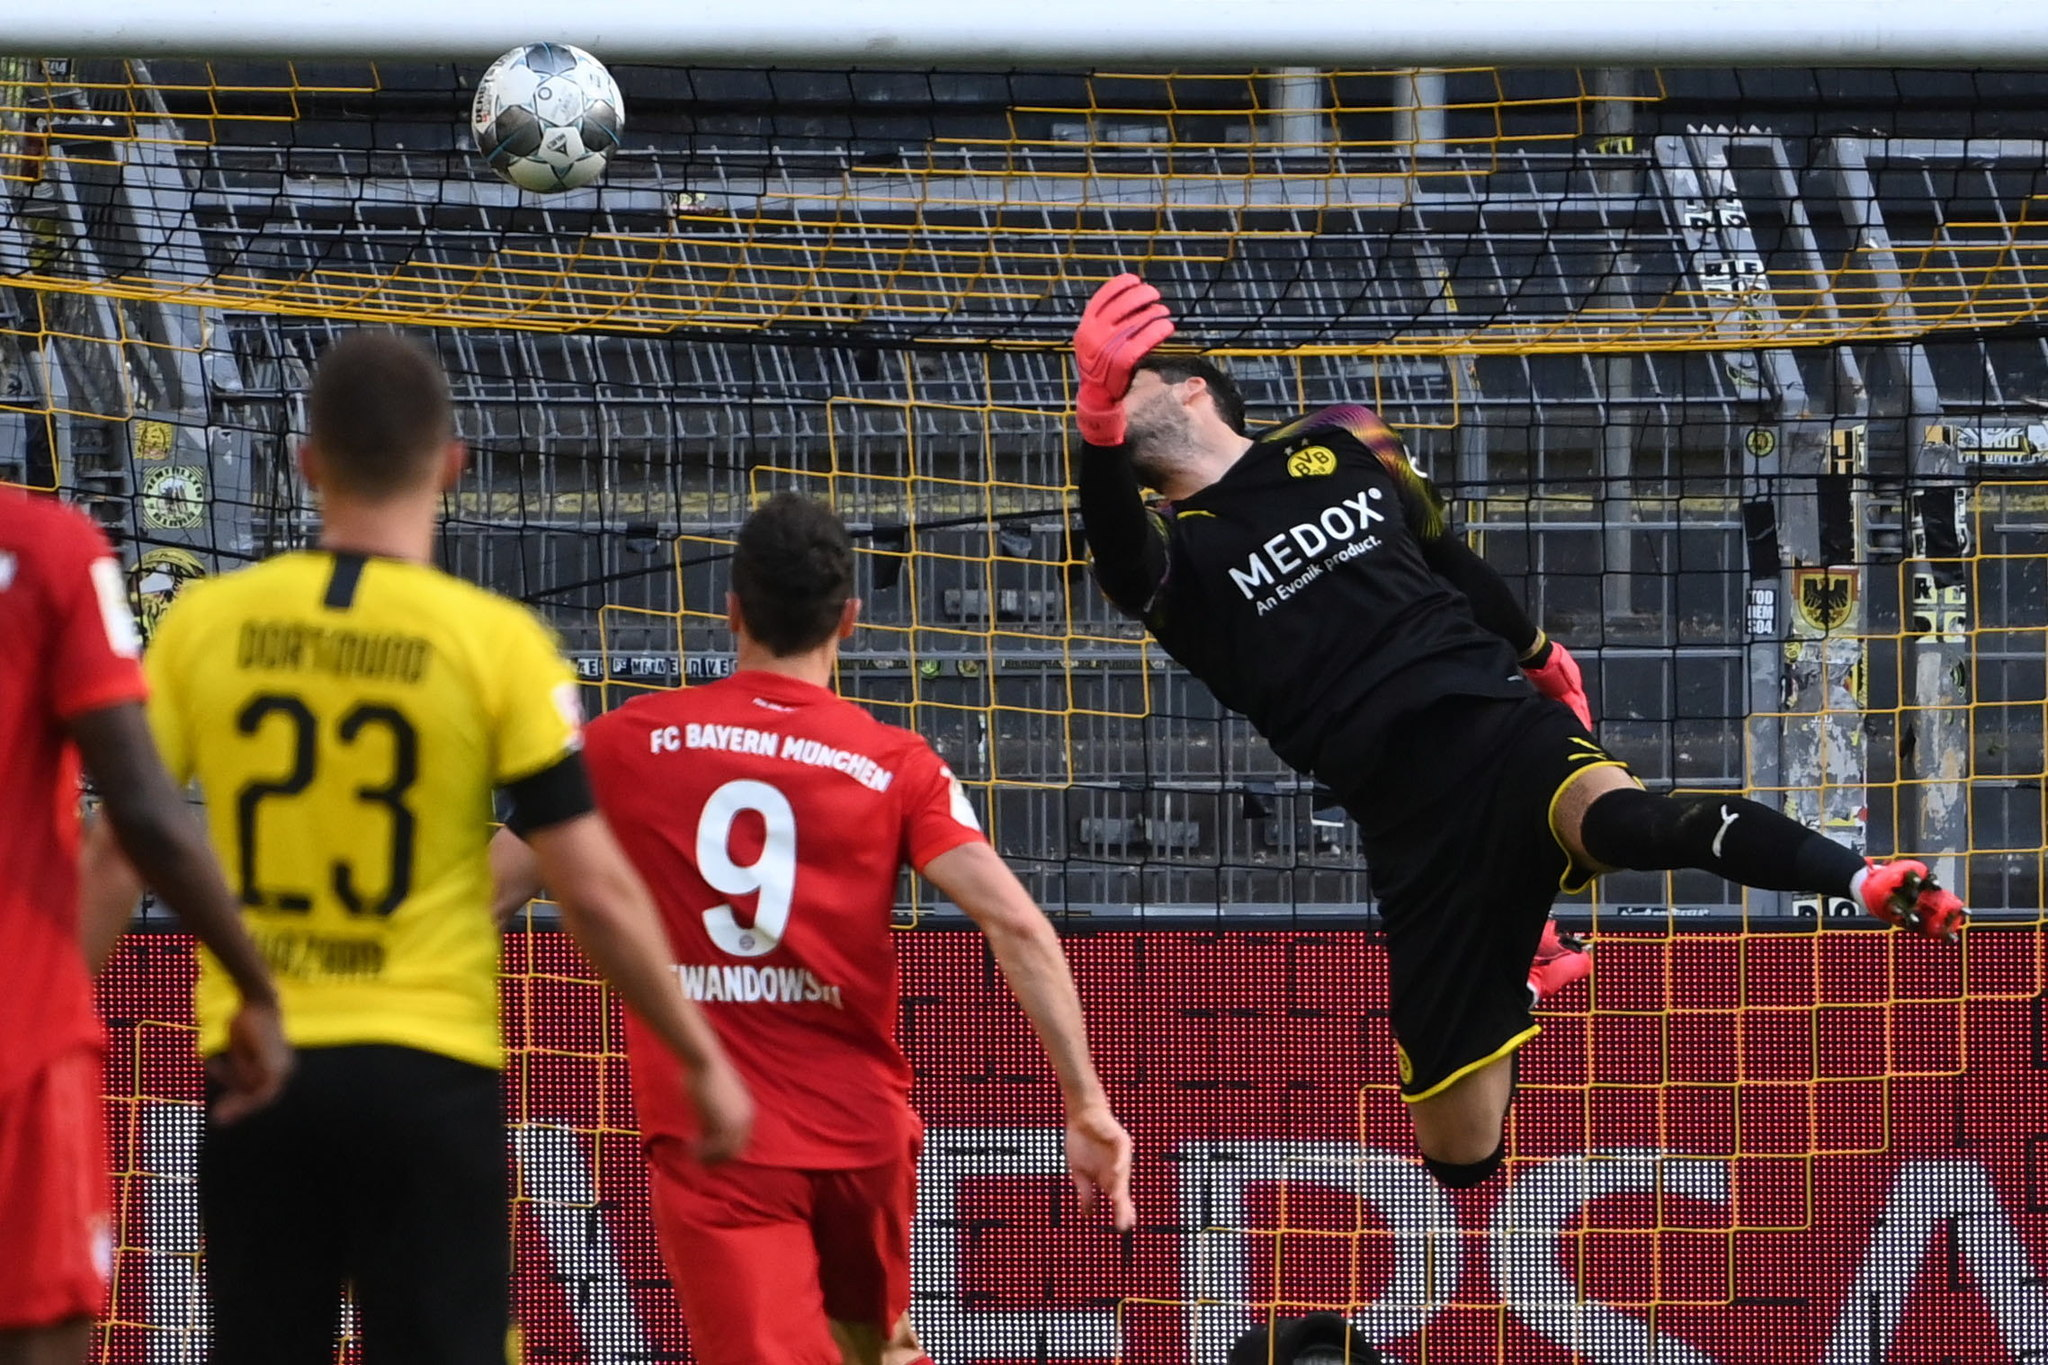 Dortmund (Germany), 26/05/2020.- Dortmund's goalkeeper Roman Buerki (R) concedes the 0-1 goal scored by Bayern Munich's Joshua lt;HIT gt;Kimmich lt;/HIT gt; (not pictured) during the German Bundesliga soccer match between Borussia Dortmund and FC Bayern Munich at Signal Iduna Park in Dortmund, Germany, 26 May 2020. (Alemania, Rusia) EFE/EPA/Federico Gambarini / POOL DFL regulations prohibit any use of photographs as image sequences and/or quasi-video